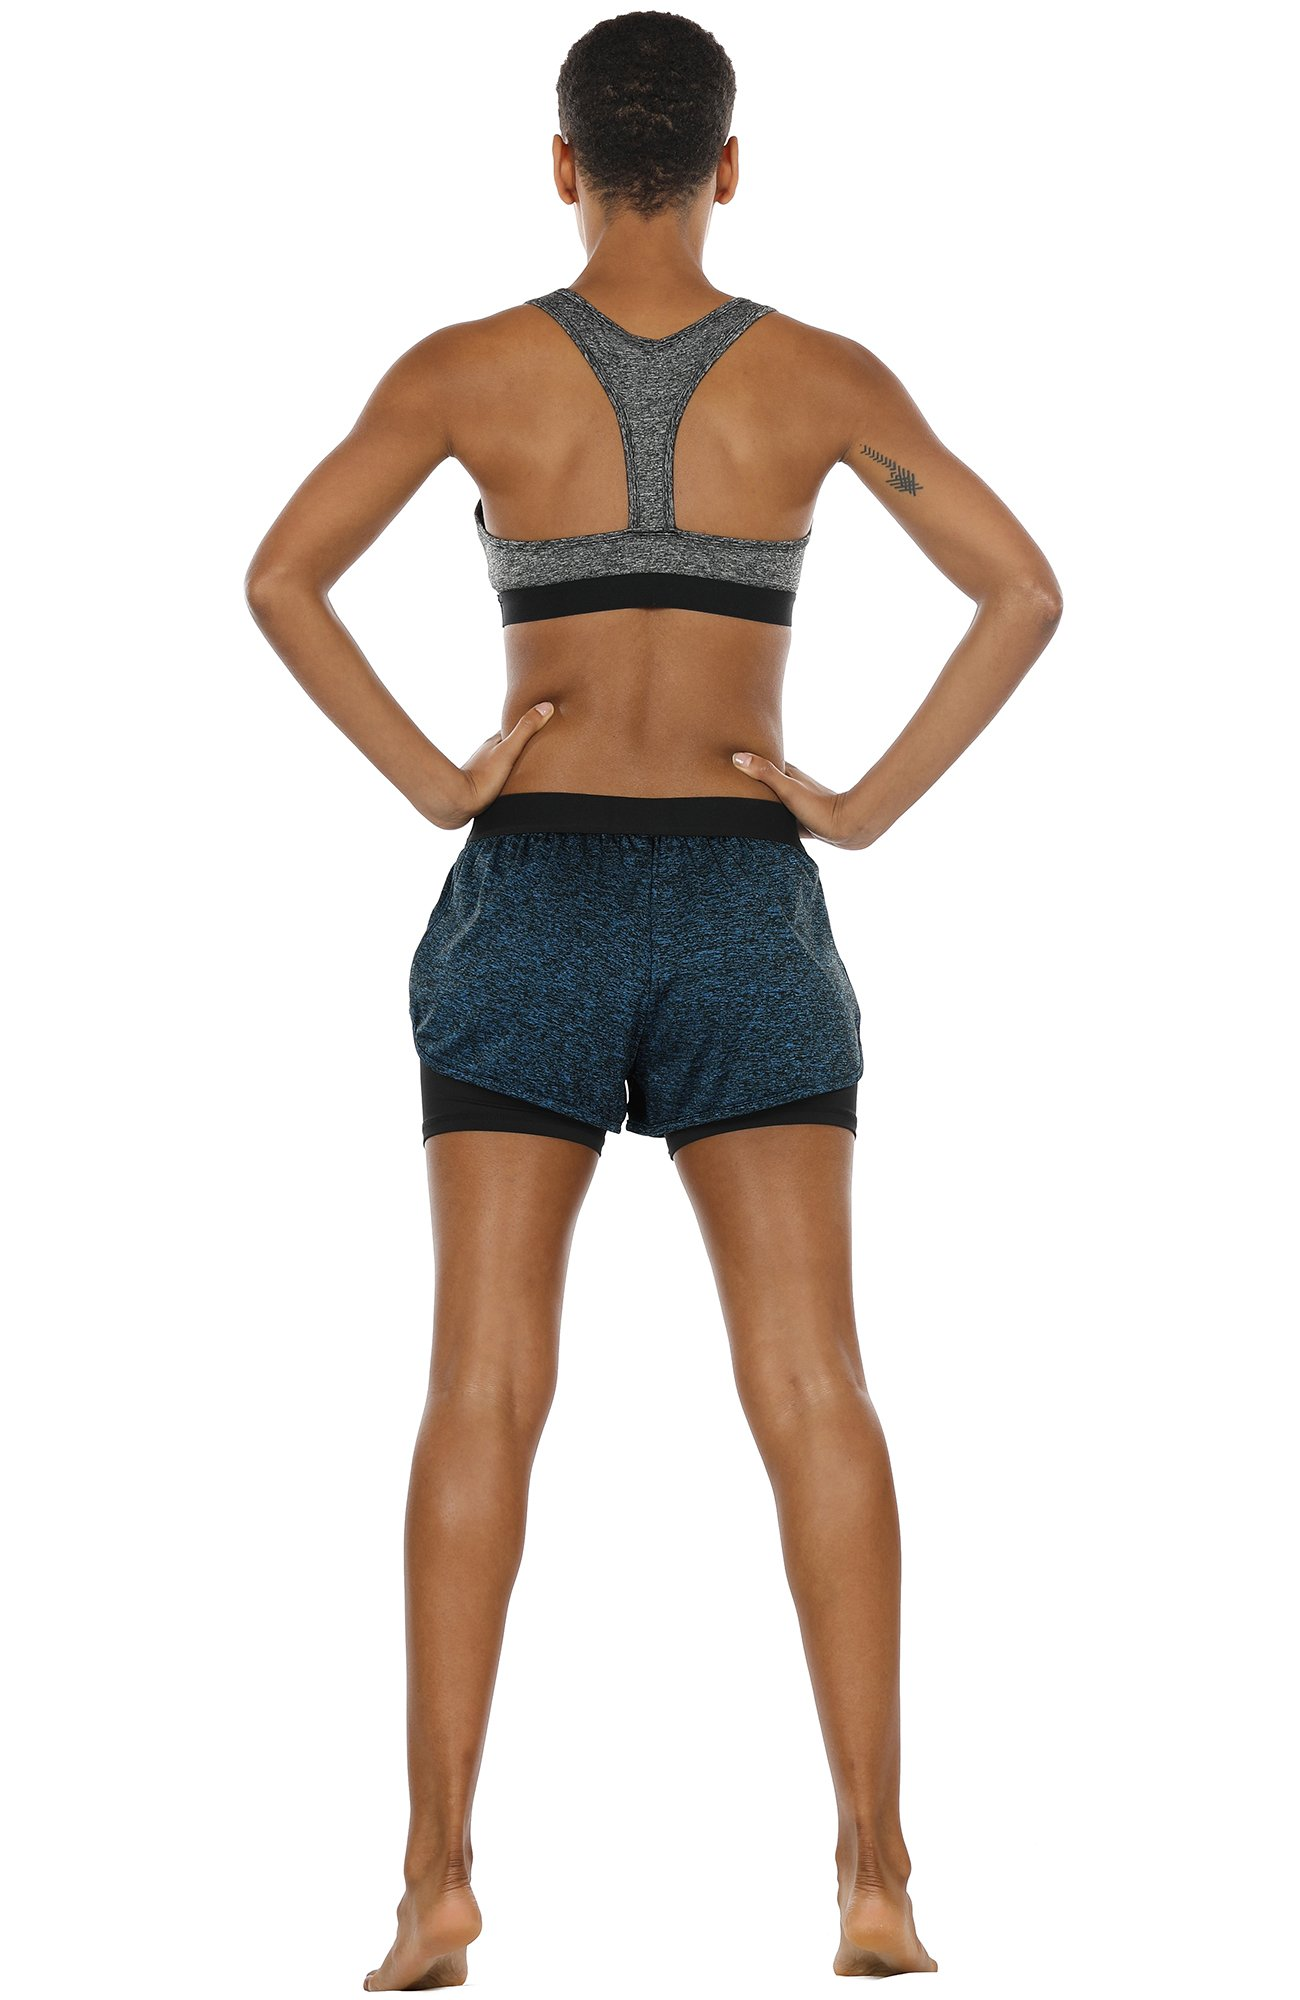 icyzone Activewear Workout Yoga Running Fitness Exercise Athletic Shorts for Women 2-in-1 (Royal Blue, M)